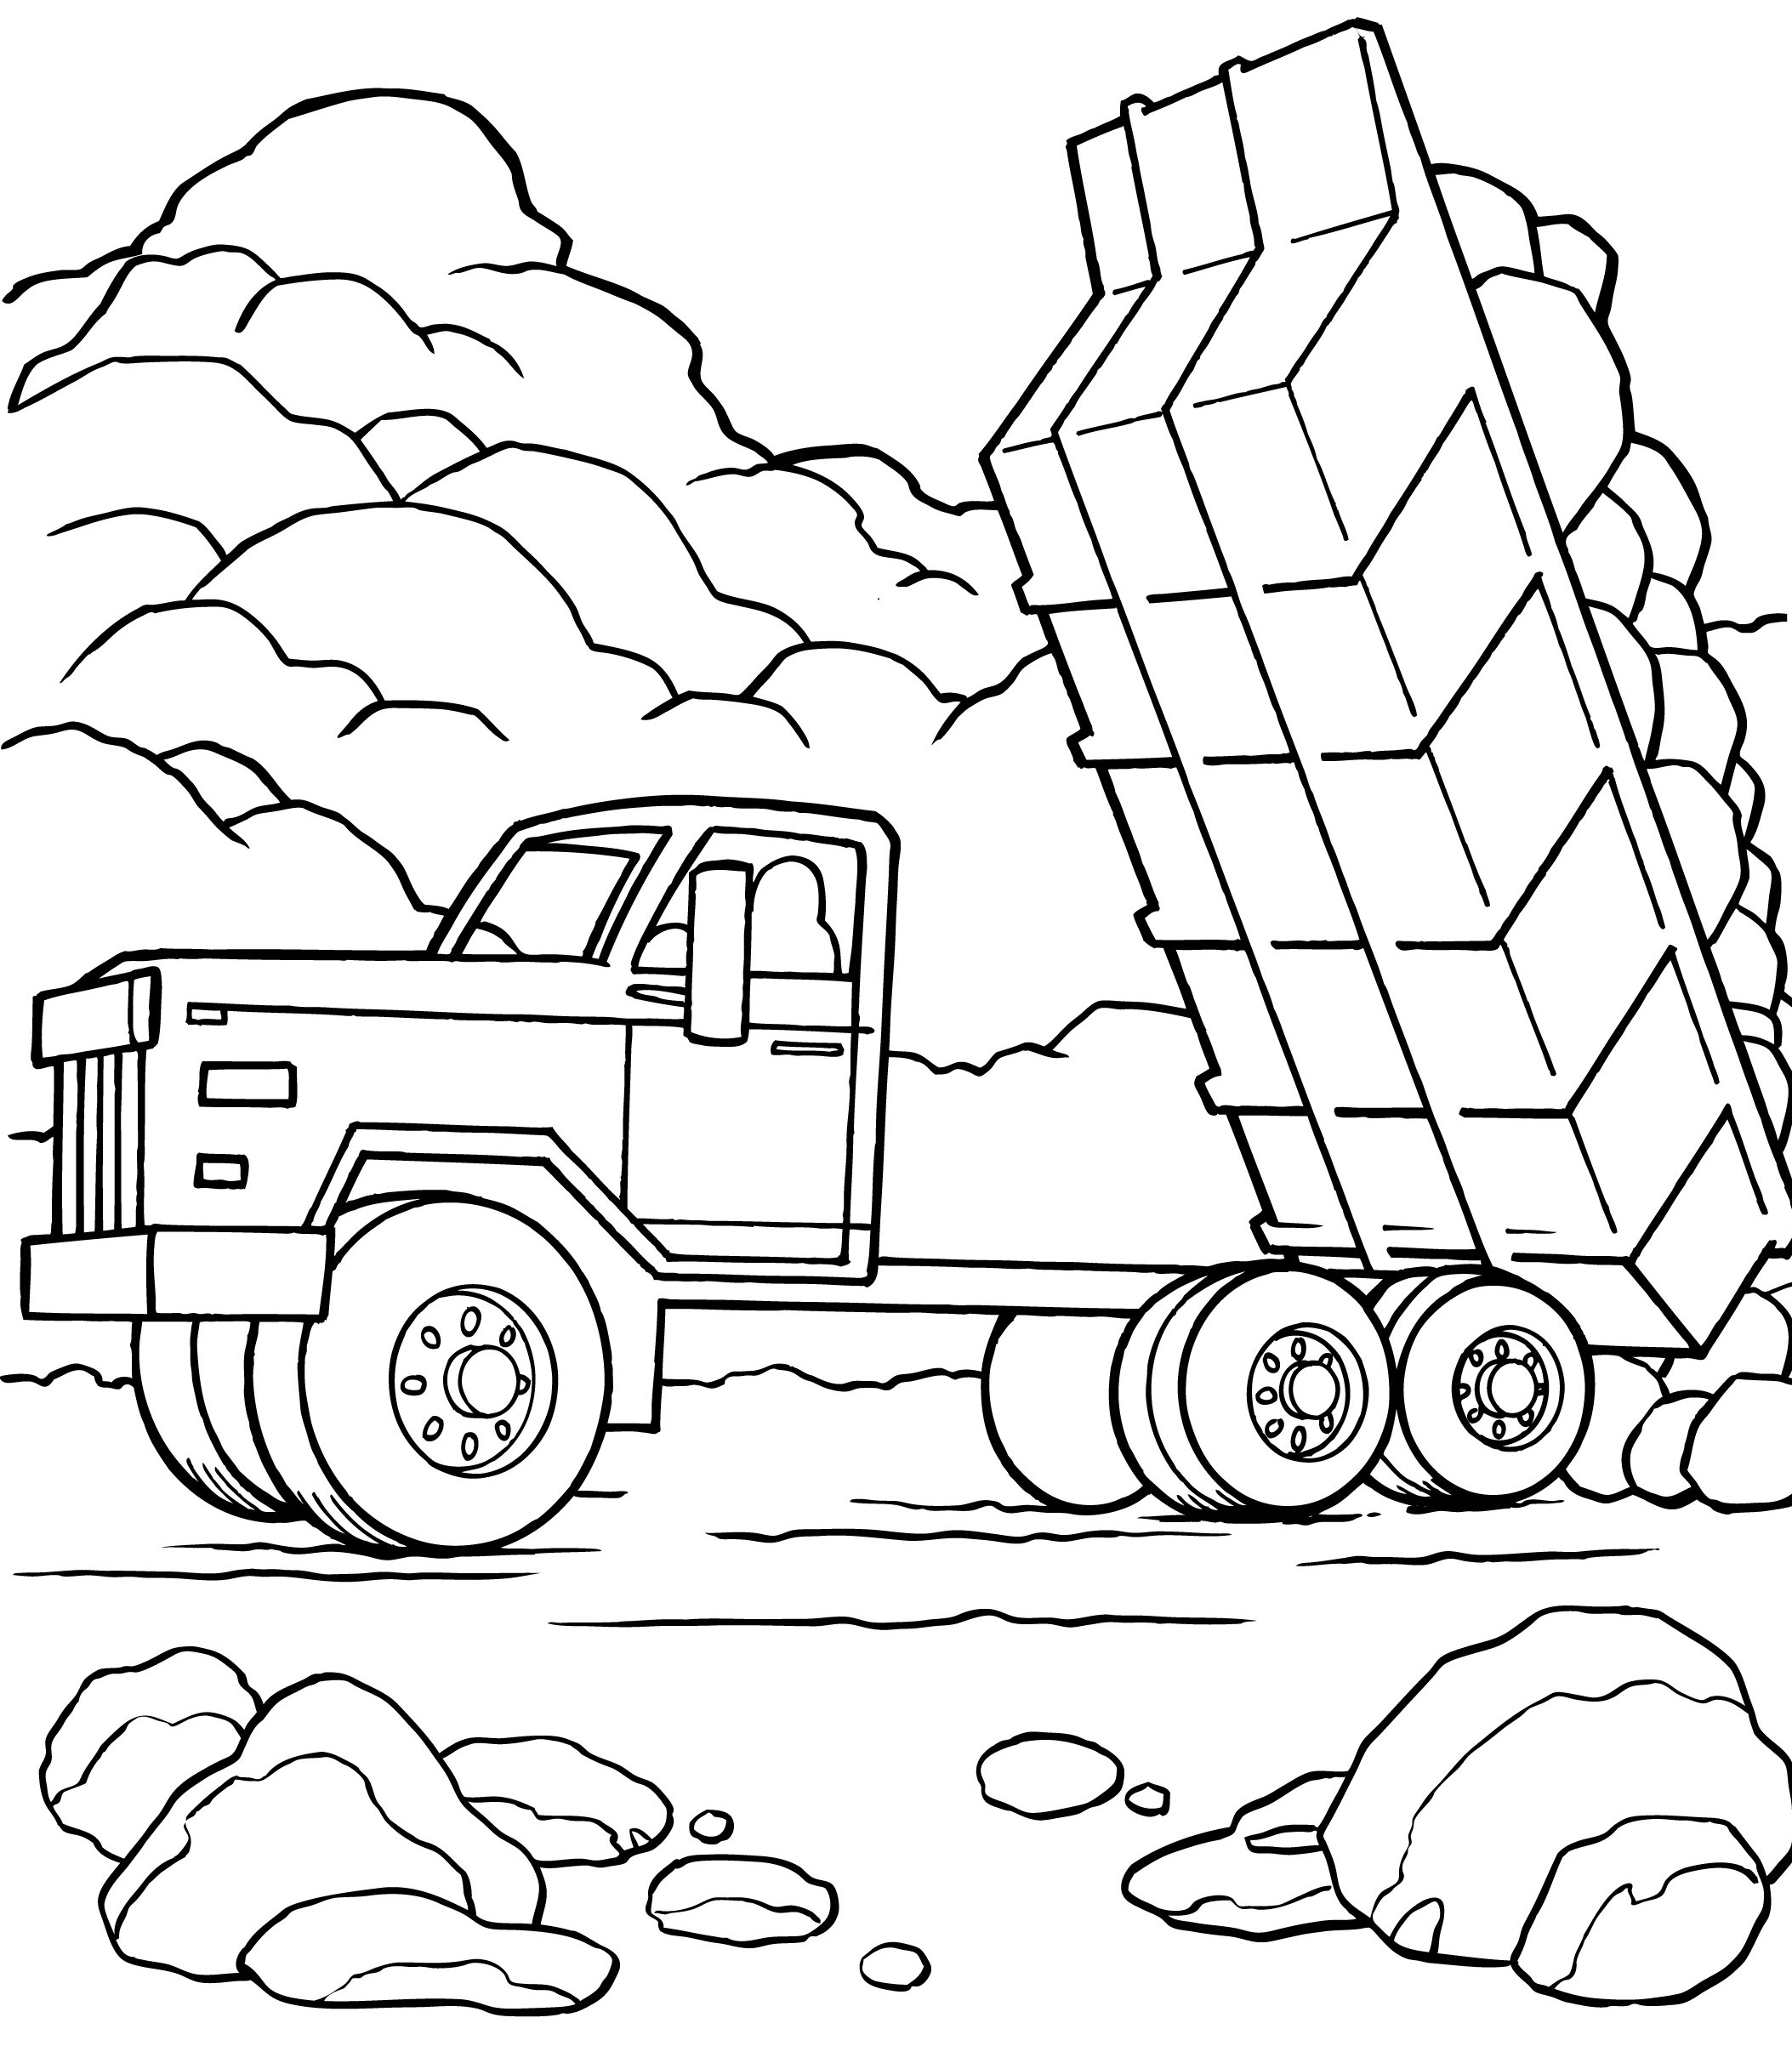 dump truck coloring pages - printable dump truck coloring pages